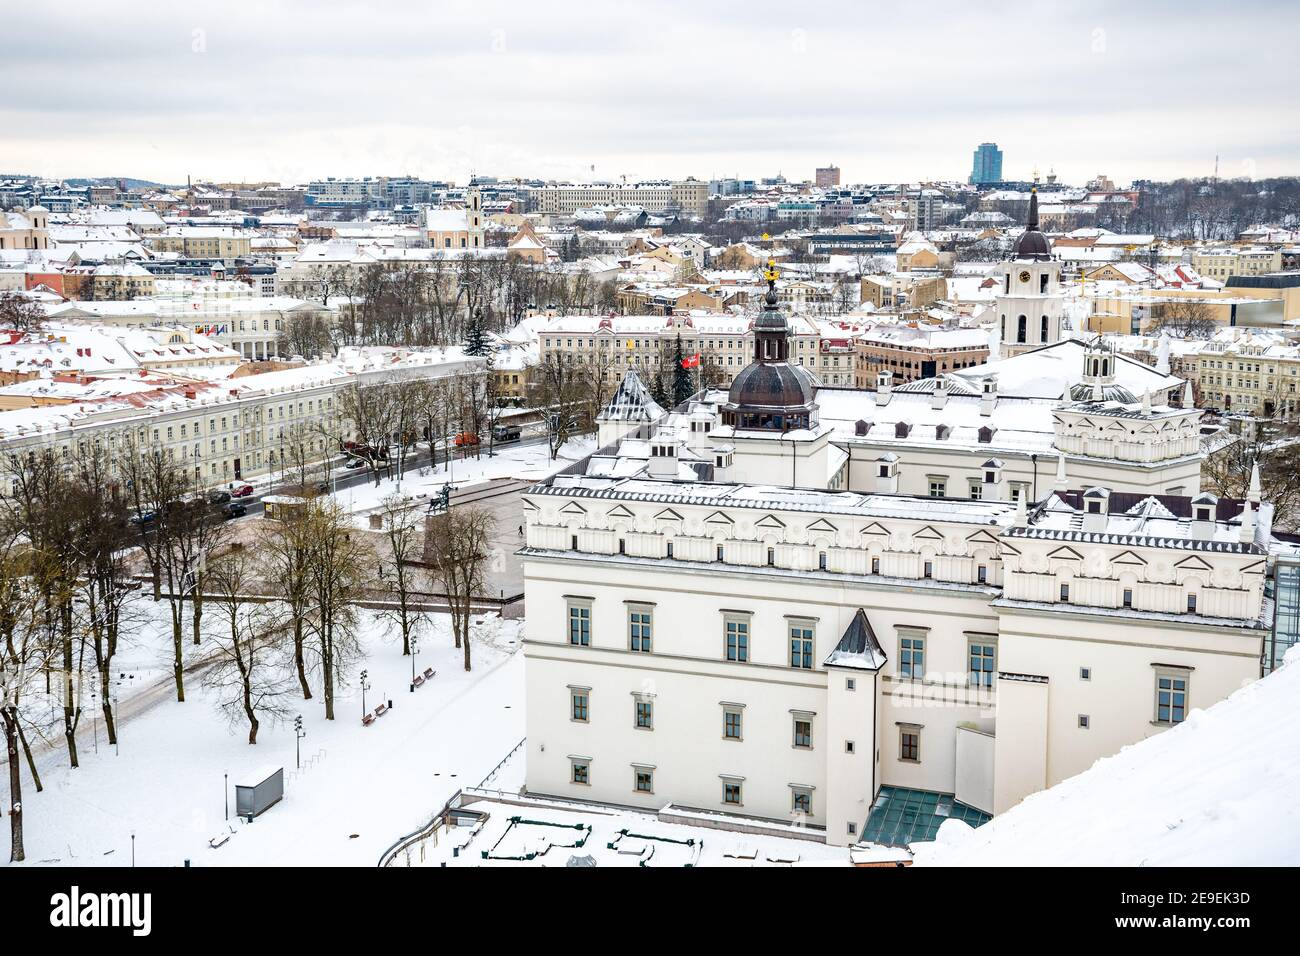 Aerial view of Vilnius old town, capital of Lithuania in winter day with snow Stock Photo